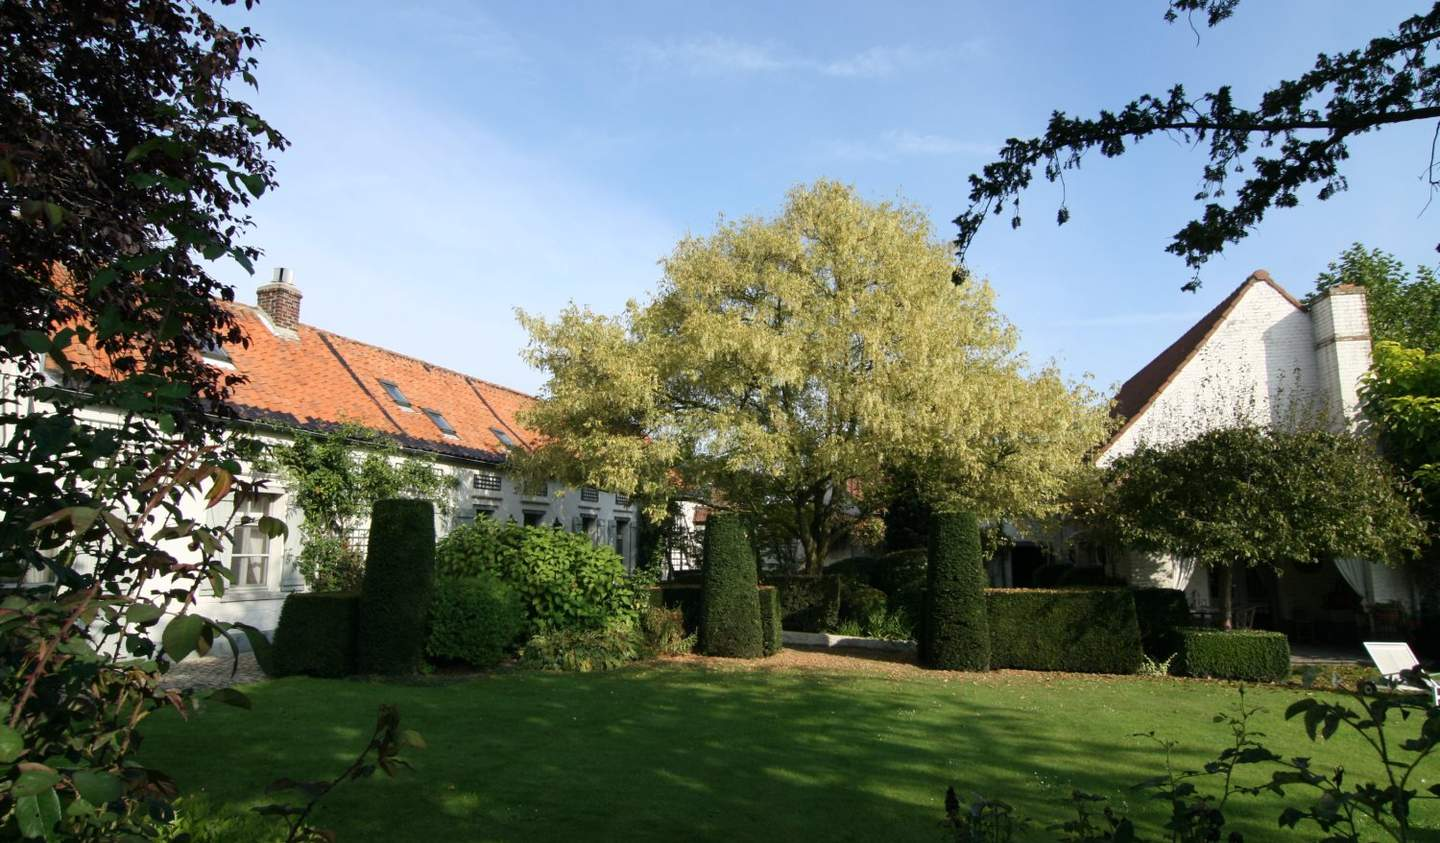 Farm house with outbuildings and garden Enghien